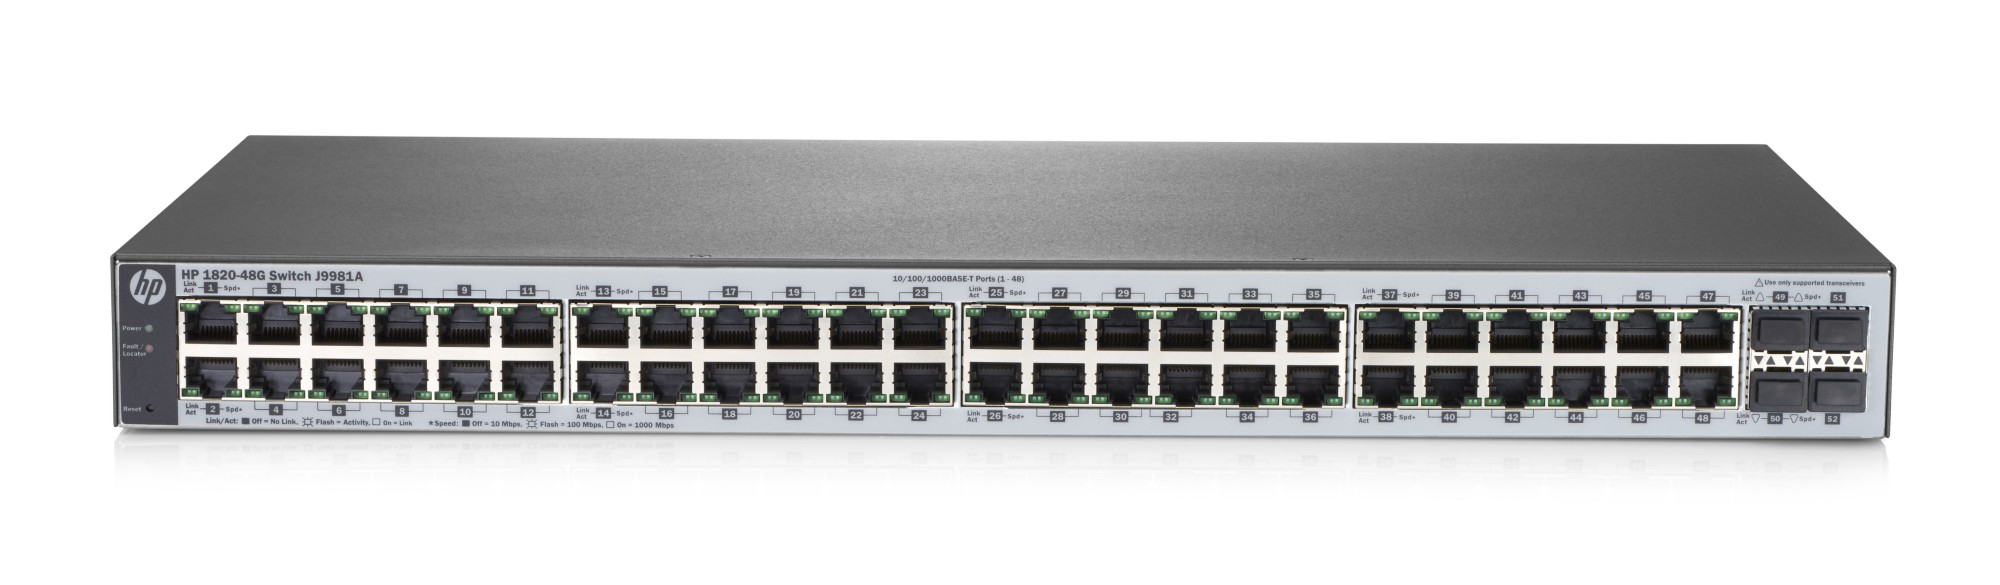 HPE J9981A 1820-48G MANAGED NETWORK SWITCH L2 GIGABIT ETHERNET (10/100/1000) 1U GREY